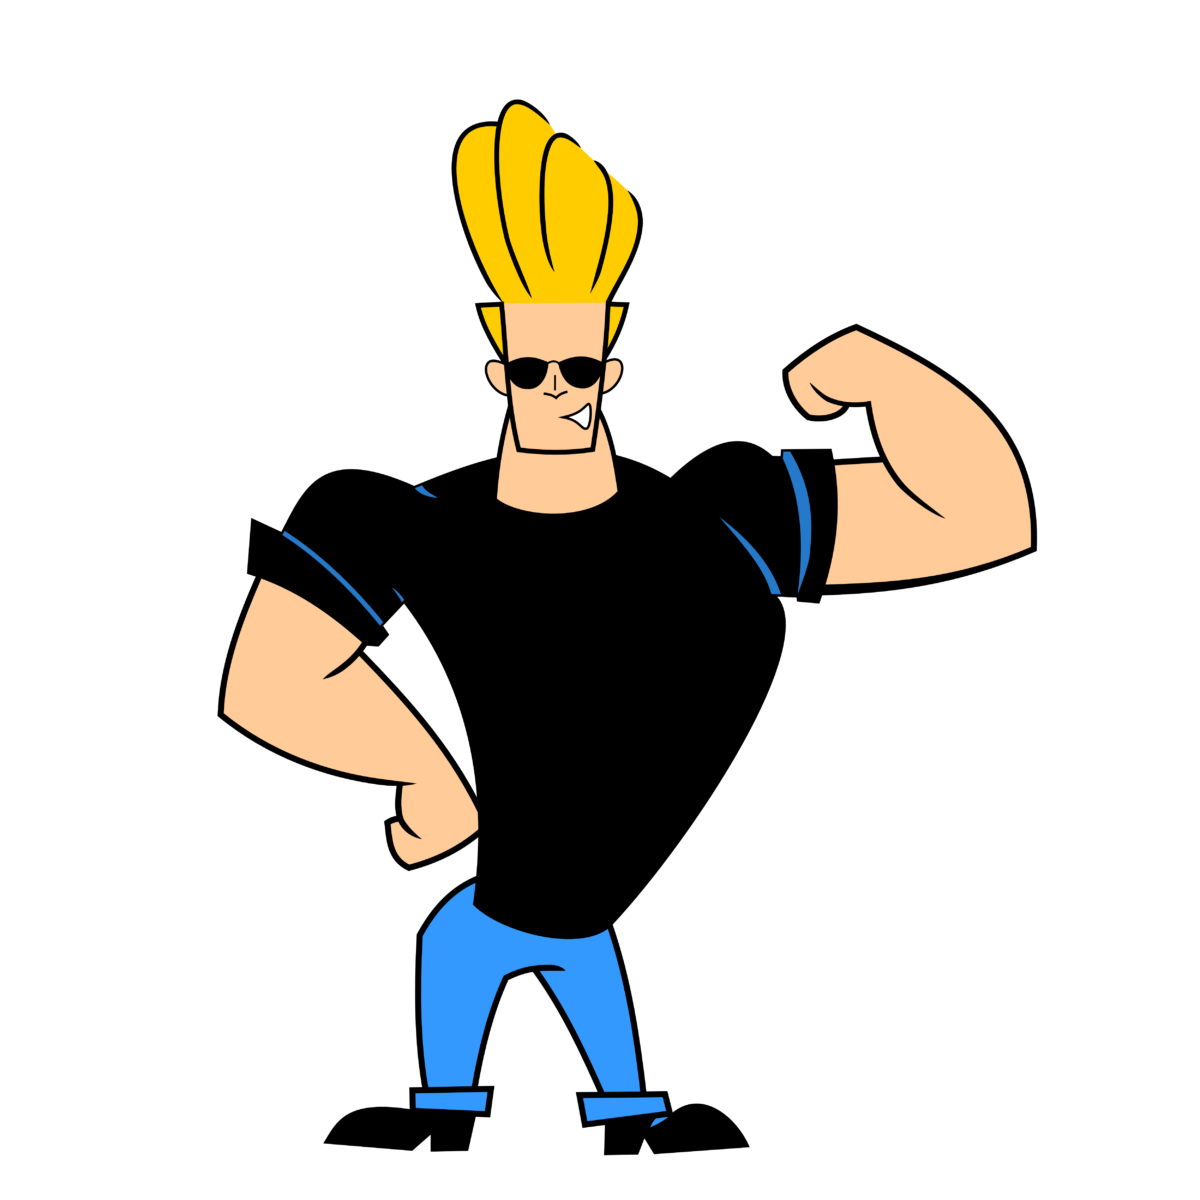 Johnny Bravo Wallpaper | HD Wallpapers, backgrounds high …